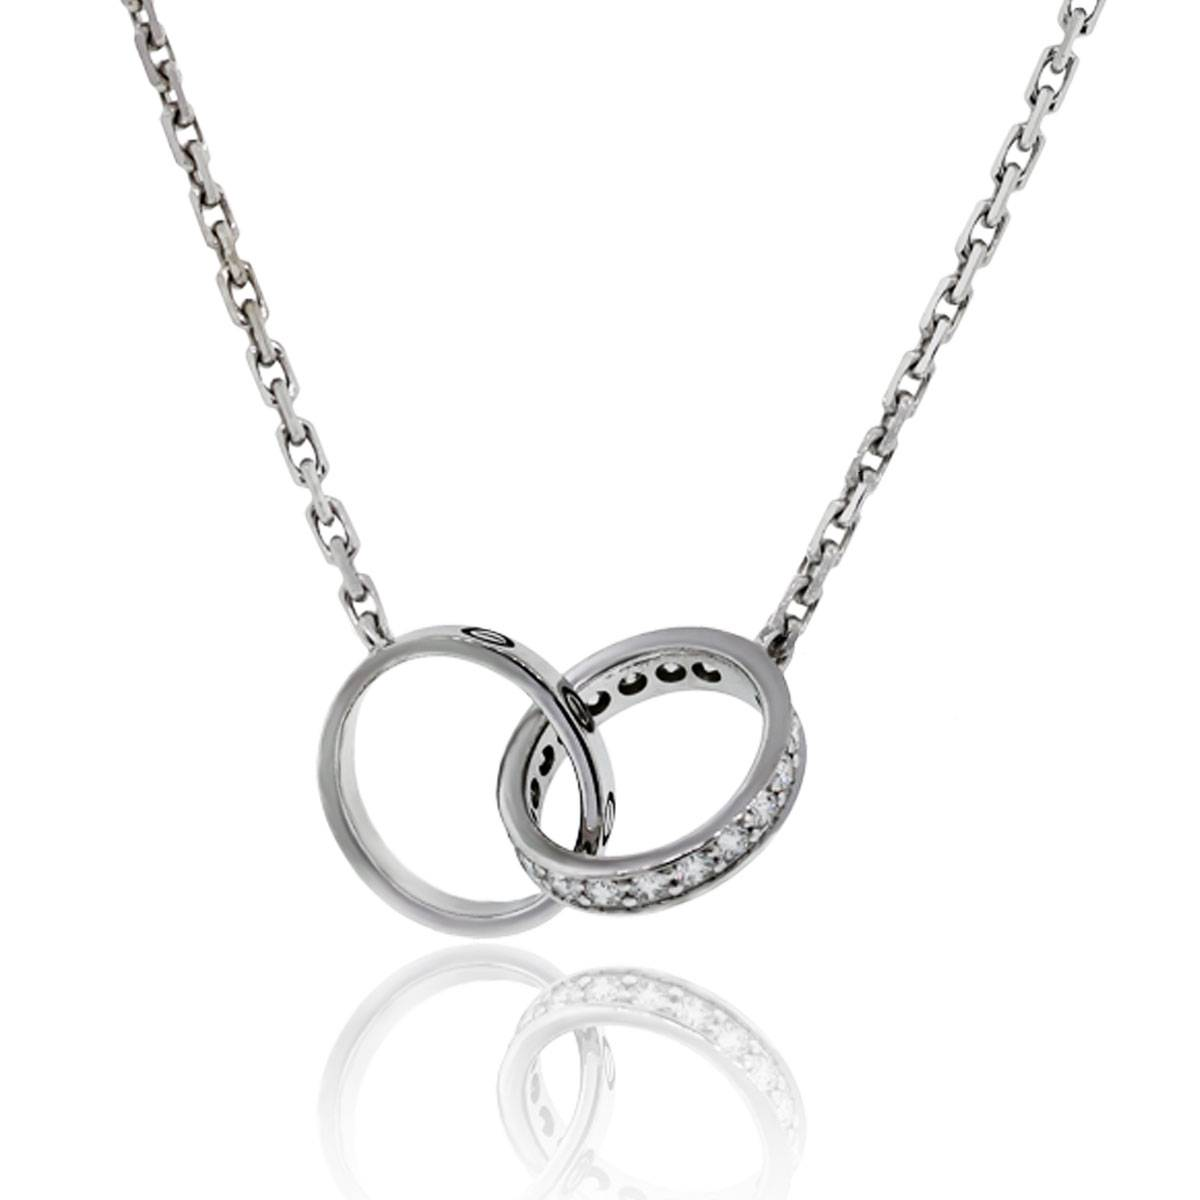 Cartier 18k White Gold & Diamond Baby Love Necklace